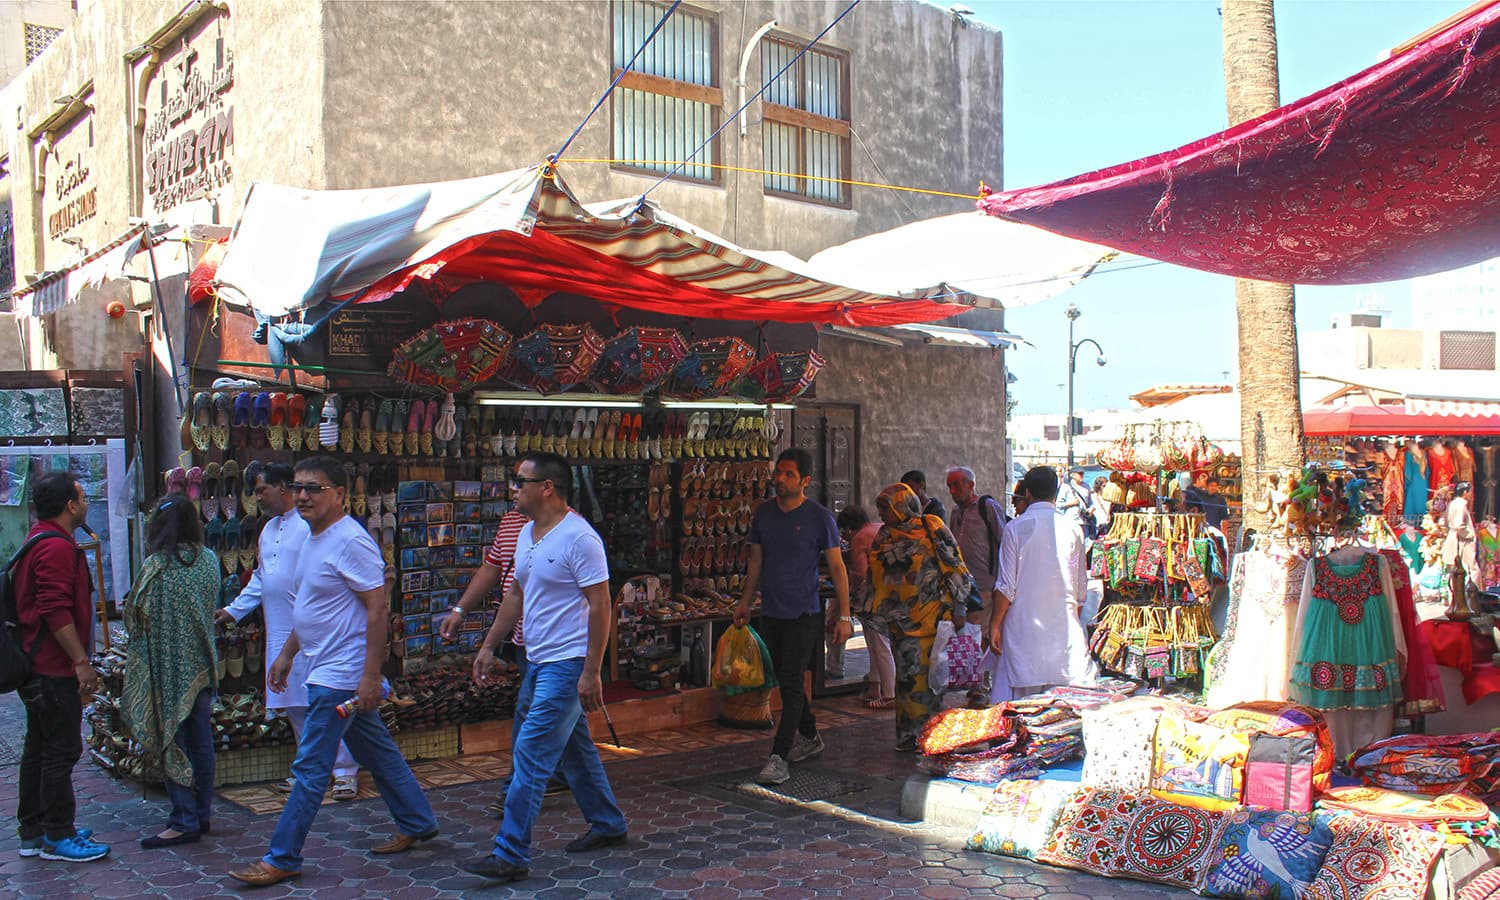 As I walked through the narrow alleys of the *souk*, I noticed the diverse range of visitors and didn't spot many locals, similar to most areas in Dubai.